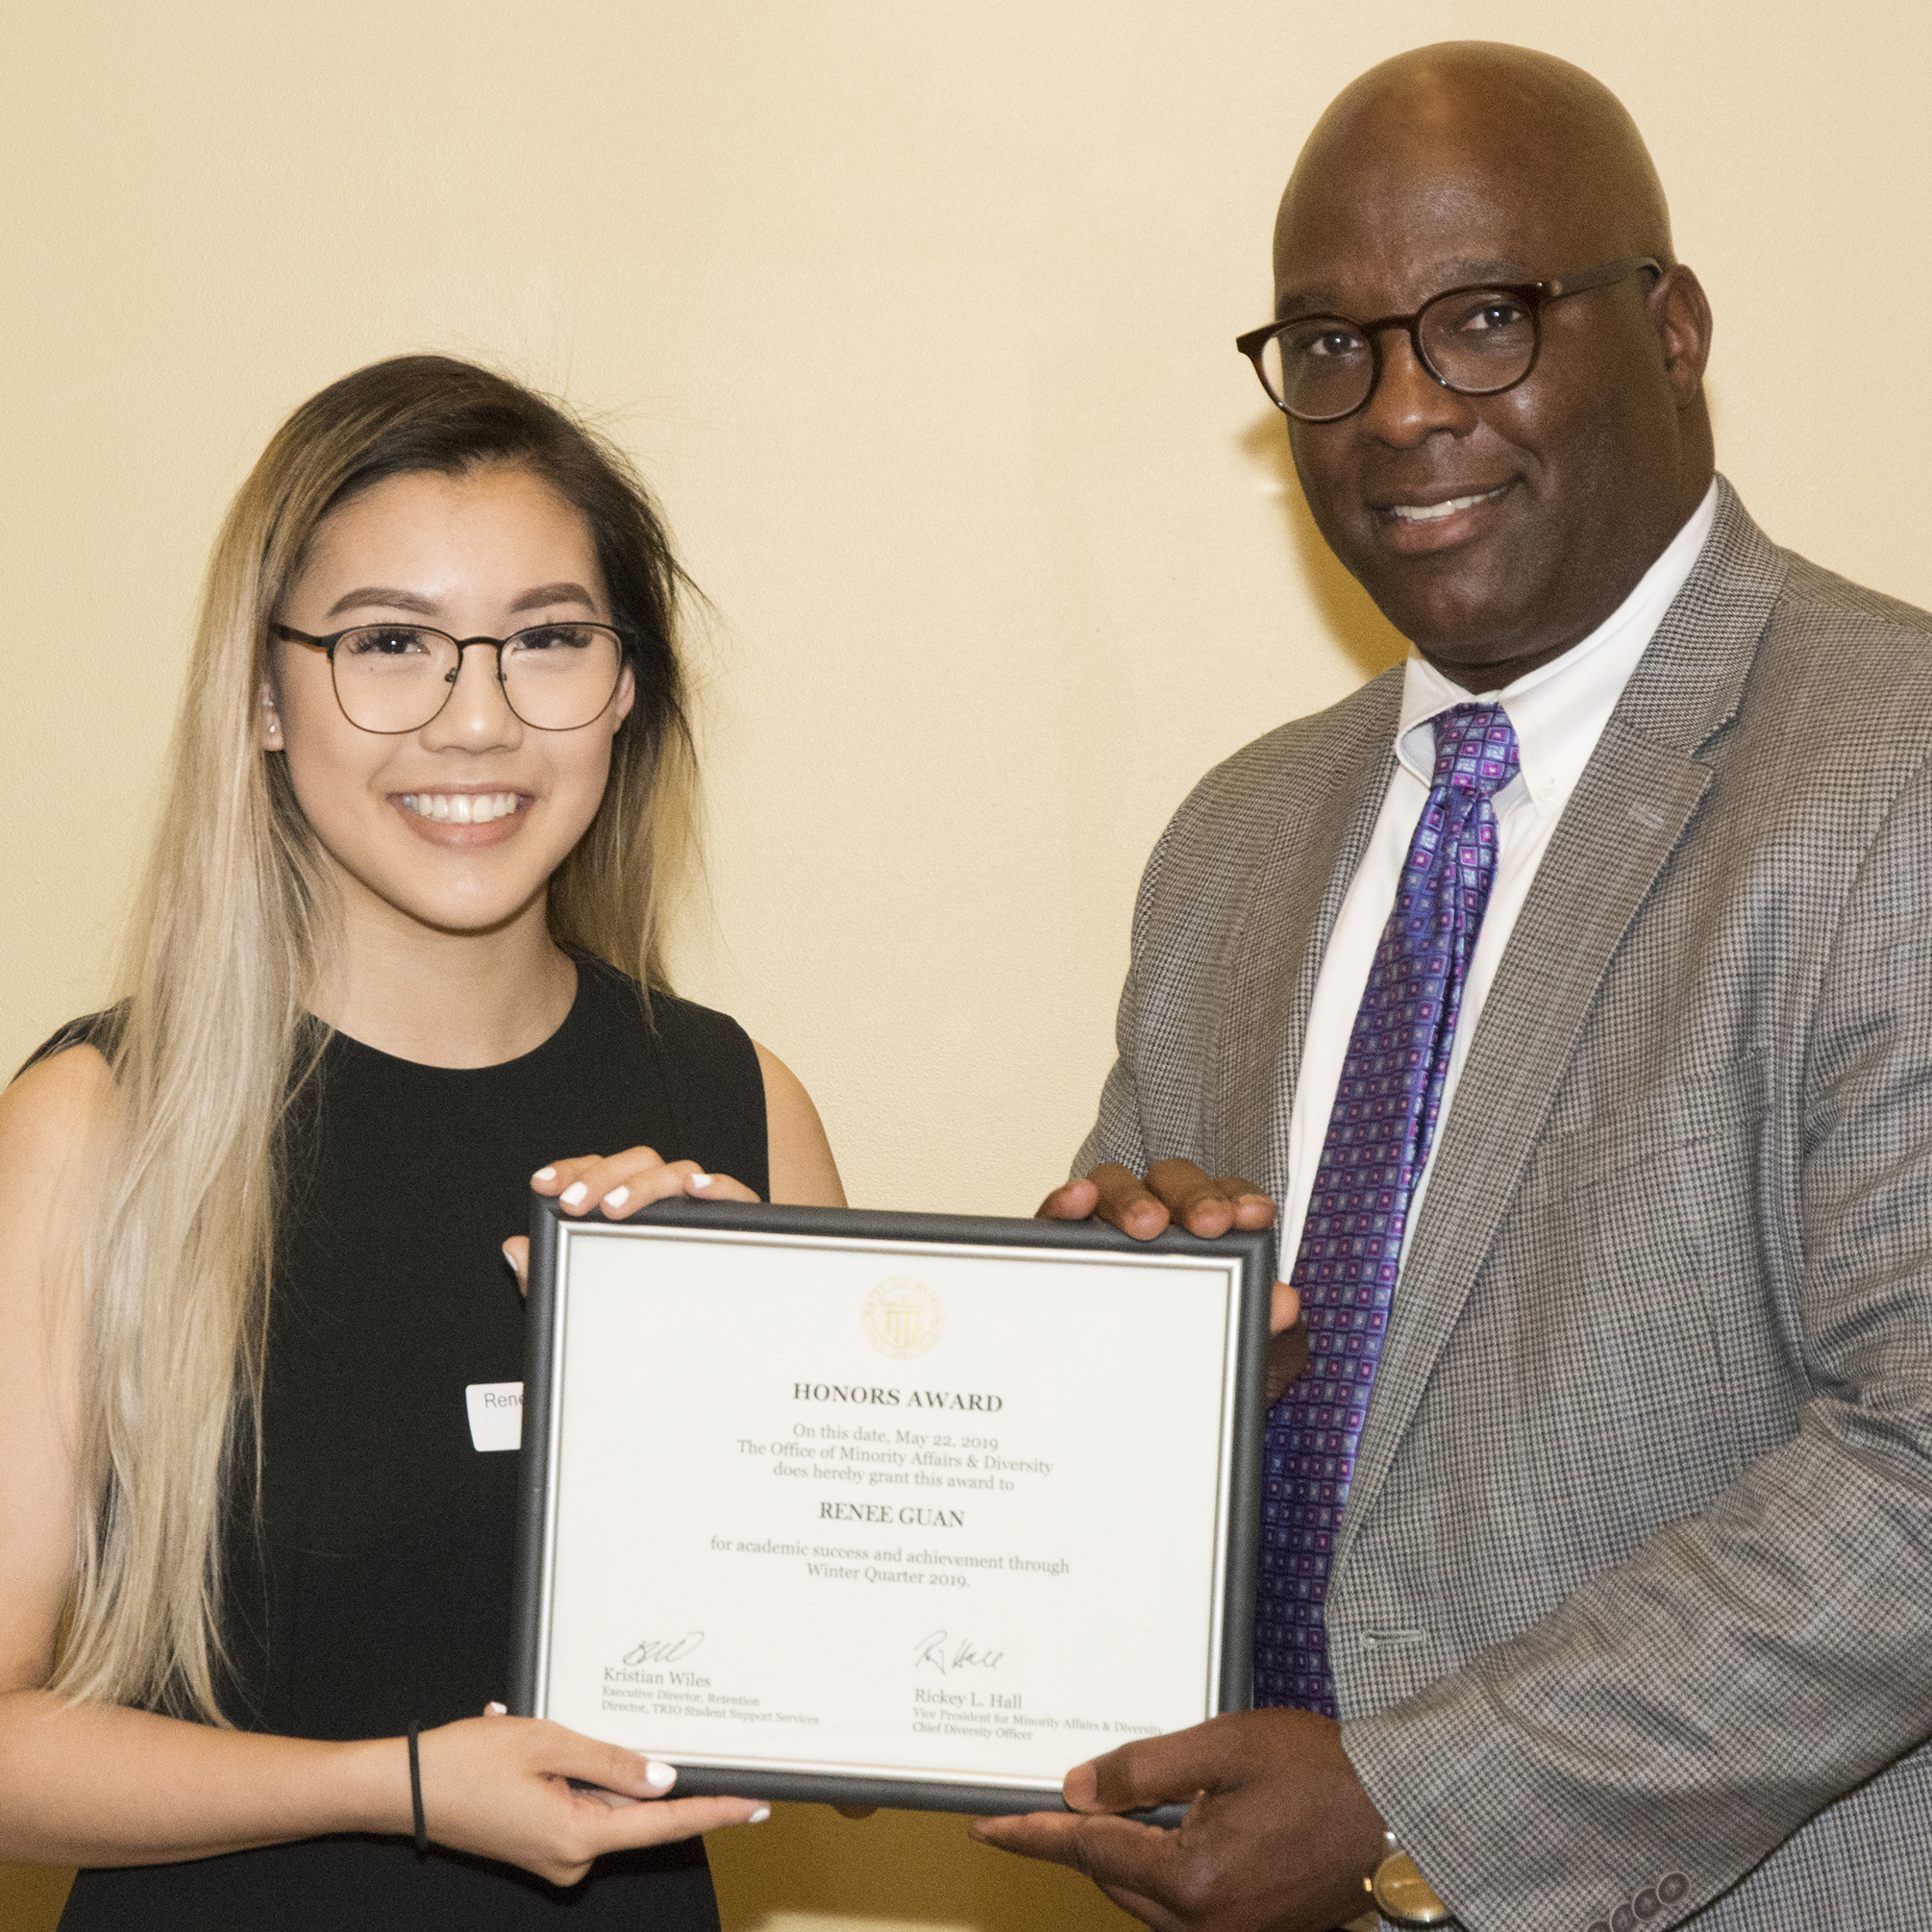 Link to article: Academic Counseling Services Hosts 33rd Annual Spring Recognition